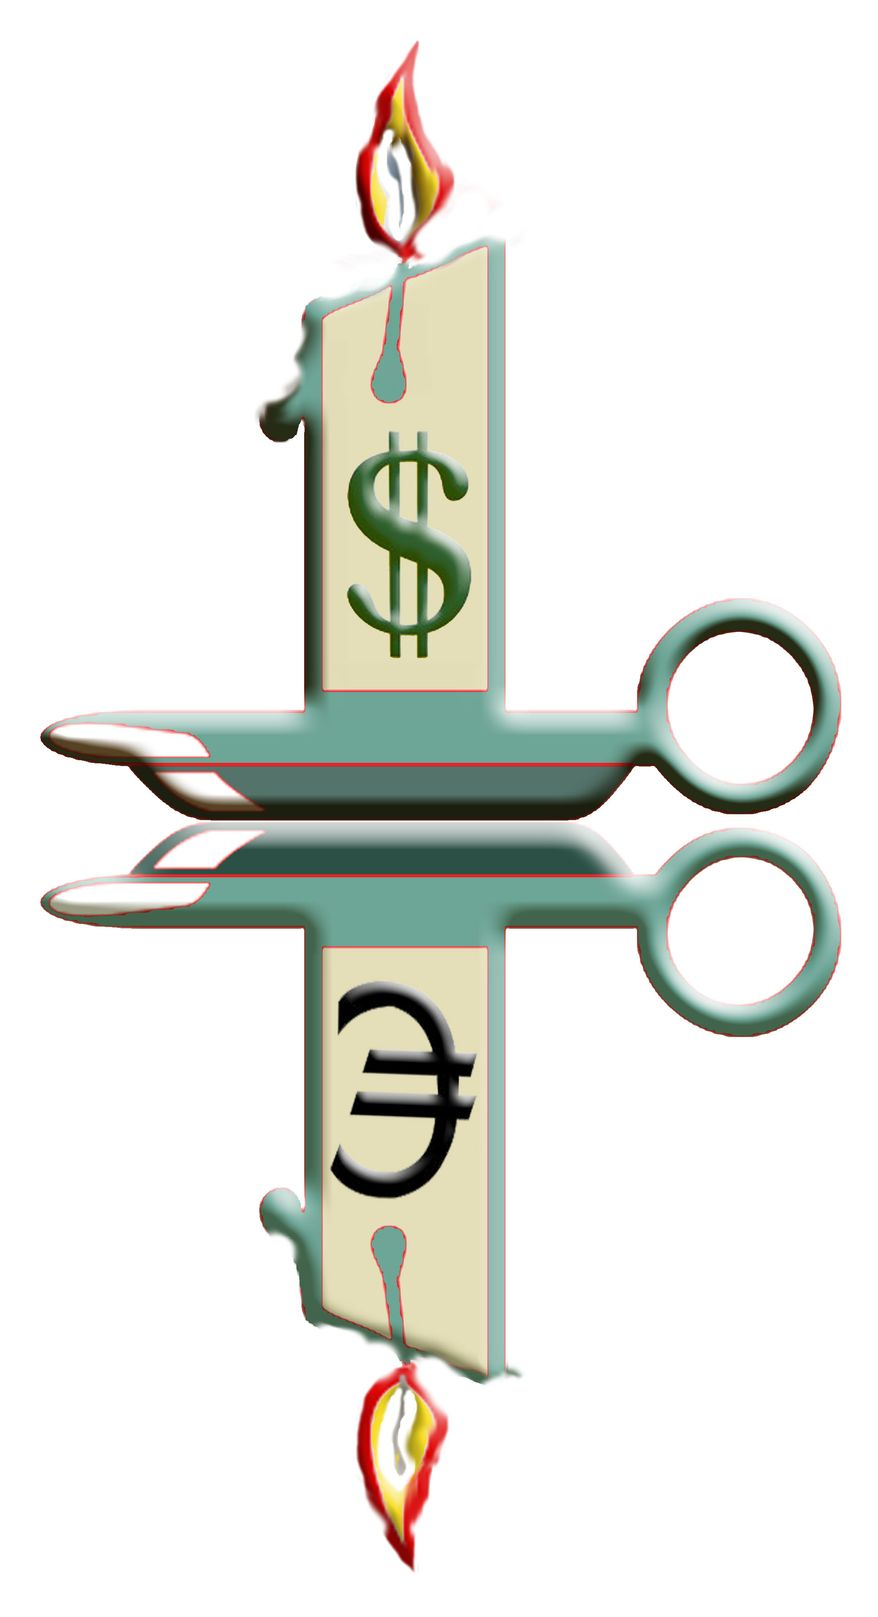 Illustration Dollar, EU Candles by John Camejo for The Washington Times